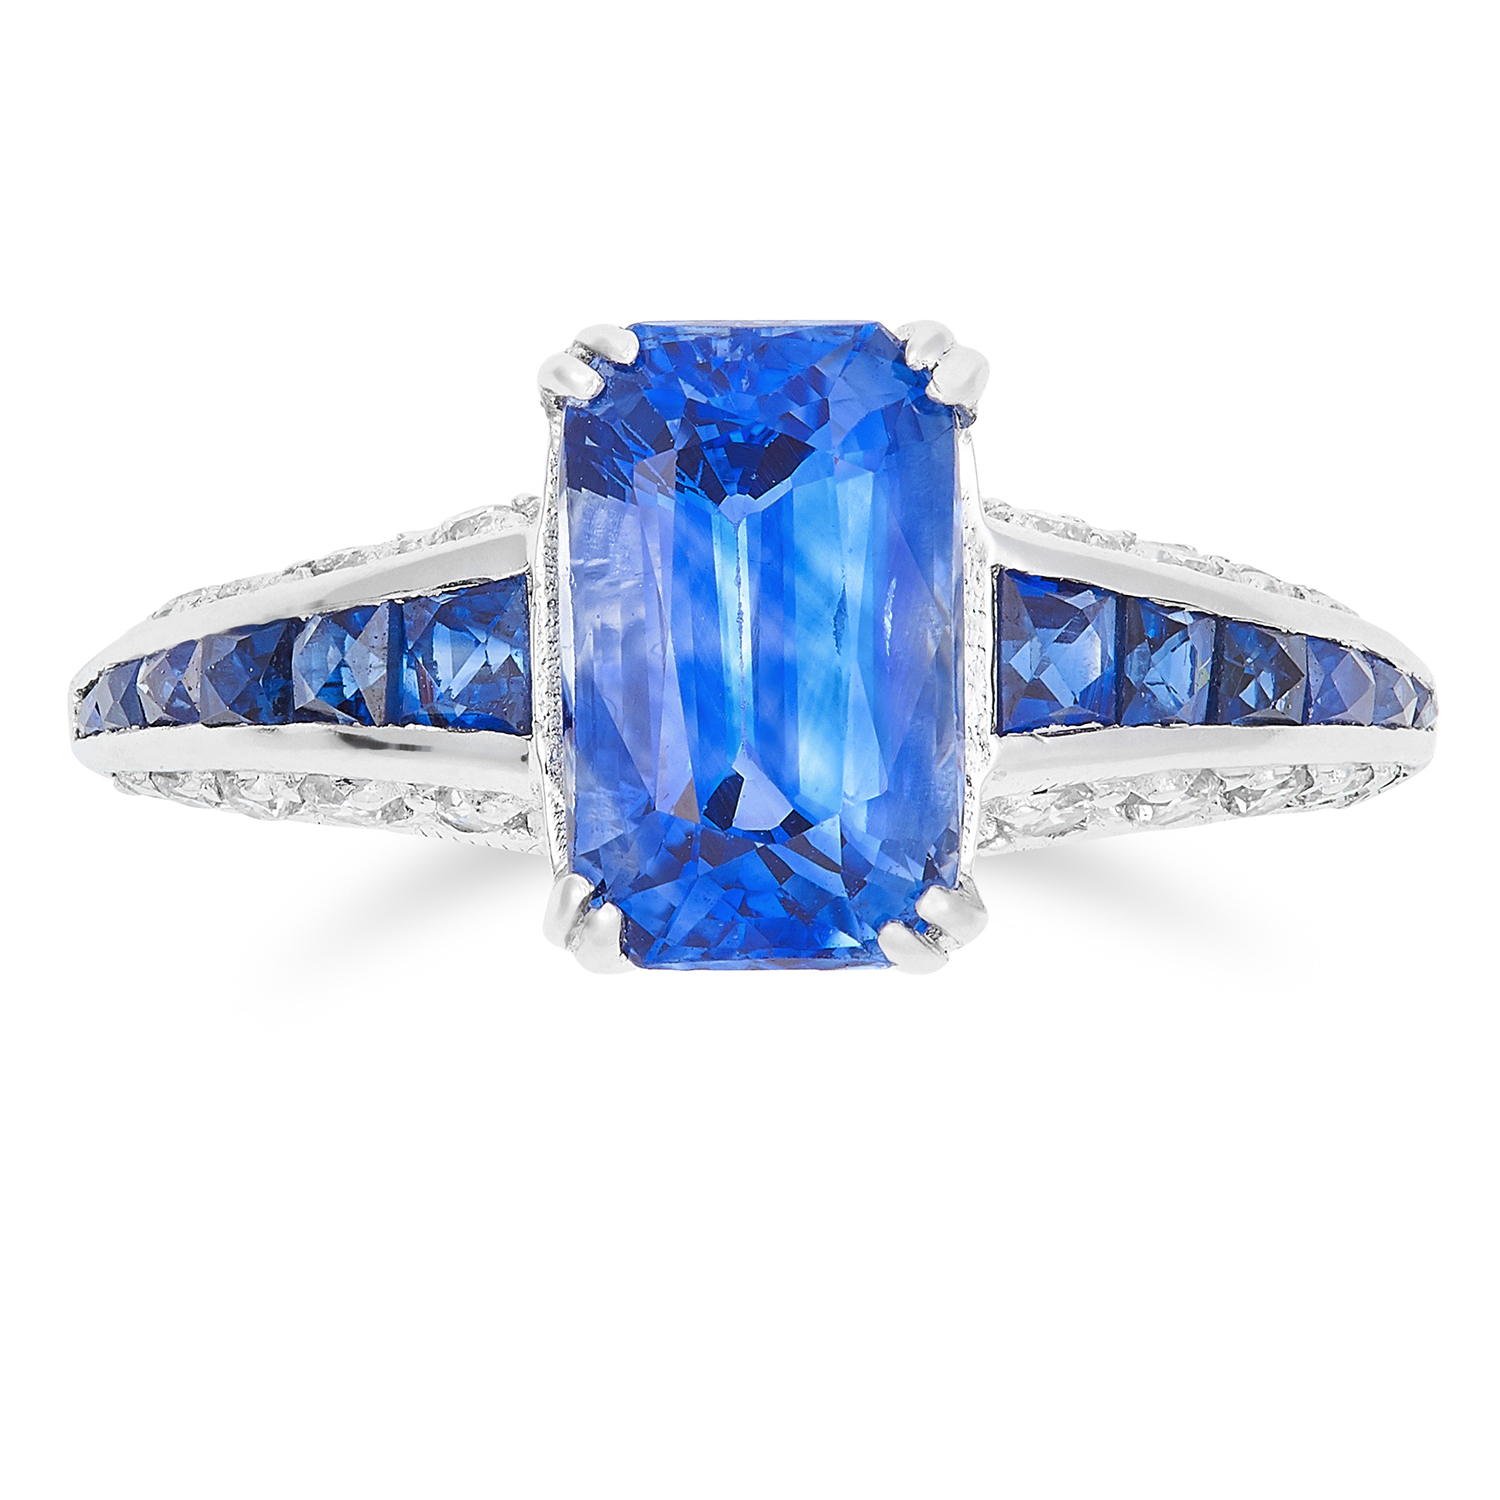 Los 16 - UNHEATED 2.54 CARAT SAPPHIRE AND DIAMOND RING set with a rectangular modified brilliant cut sapphire